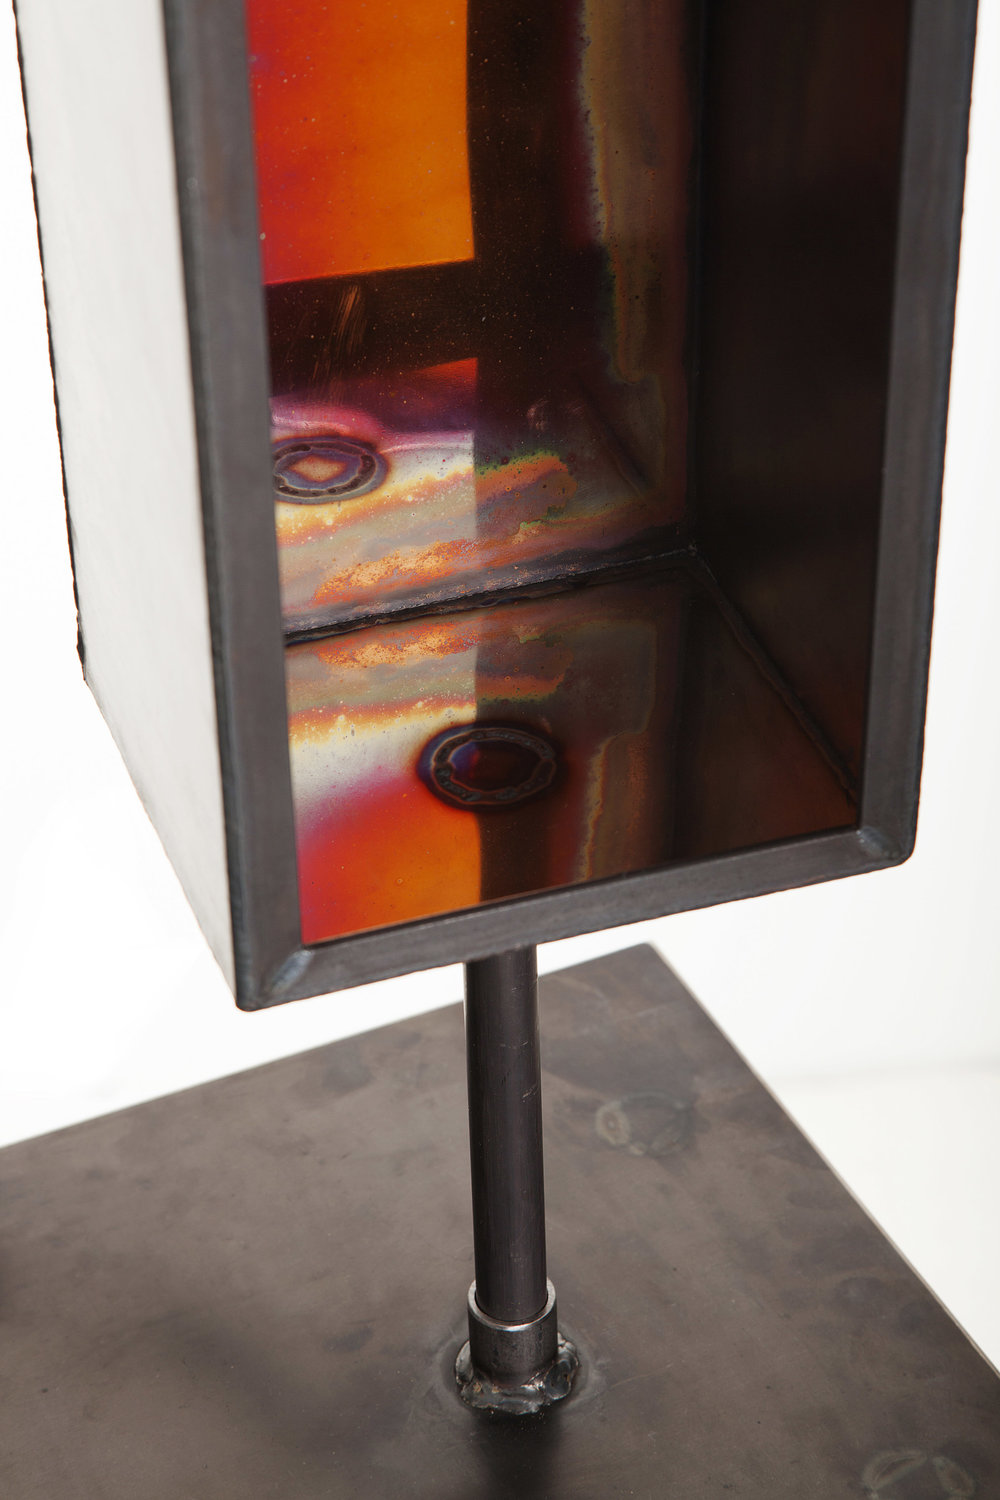 The welding of two different metals–copper and steel- creates flares of warmth and color.  Metal Cupboard,  by Michiel Poelmann